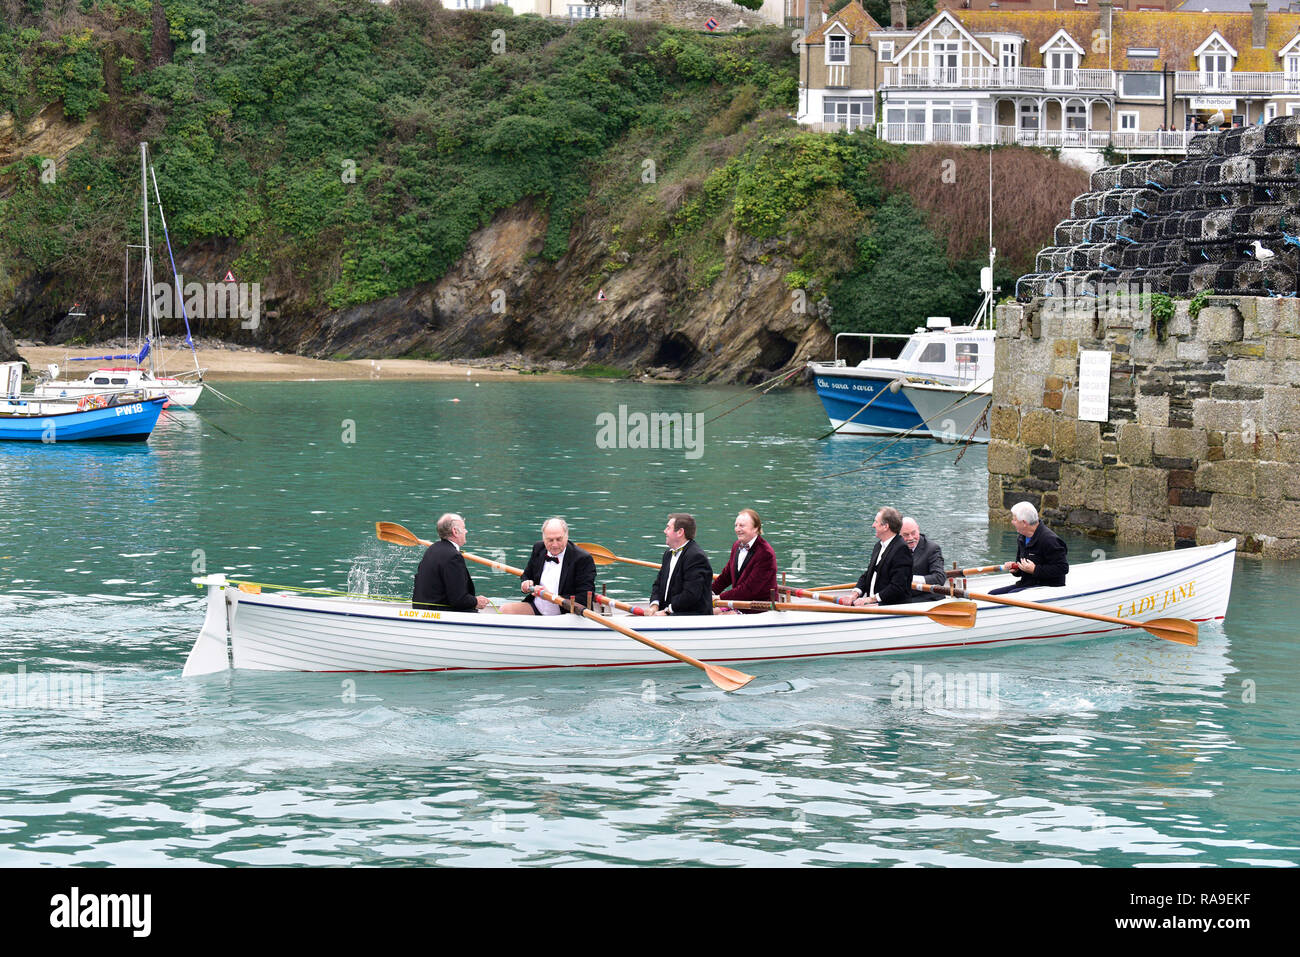 Senior members of Newquay Rowing Club wearing tuxedos setting off from Newquay Harbour on their annual 'Port Run' in a traditional Cornish Pilot g - Stock Image